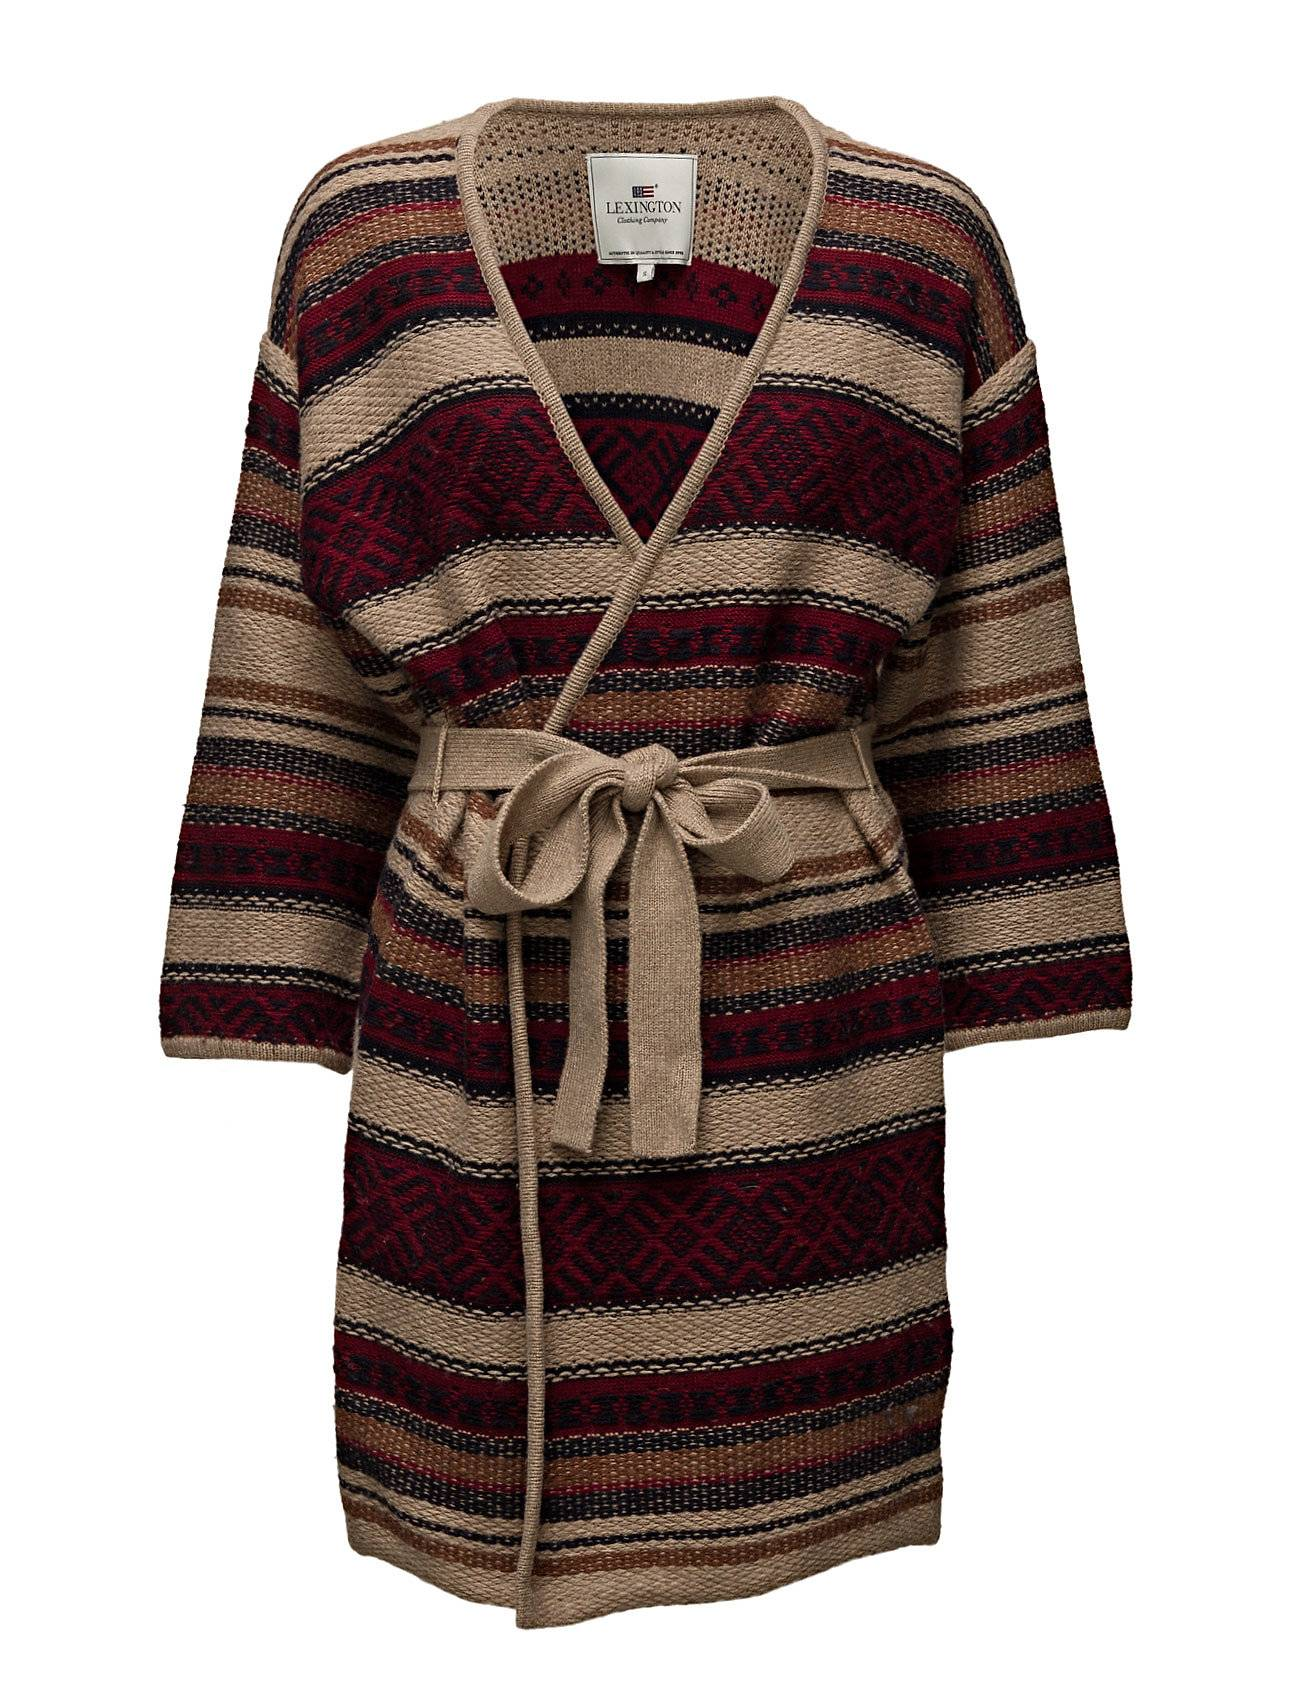 Lexington Company Rihanna Ikat Cardigan